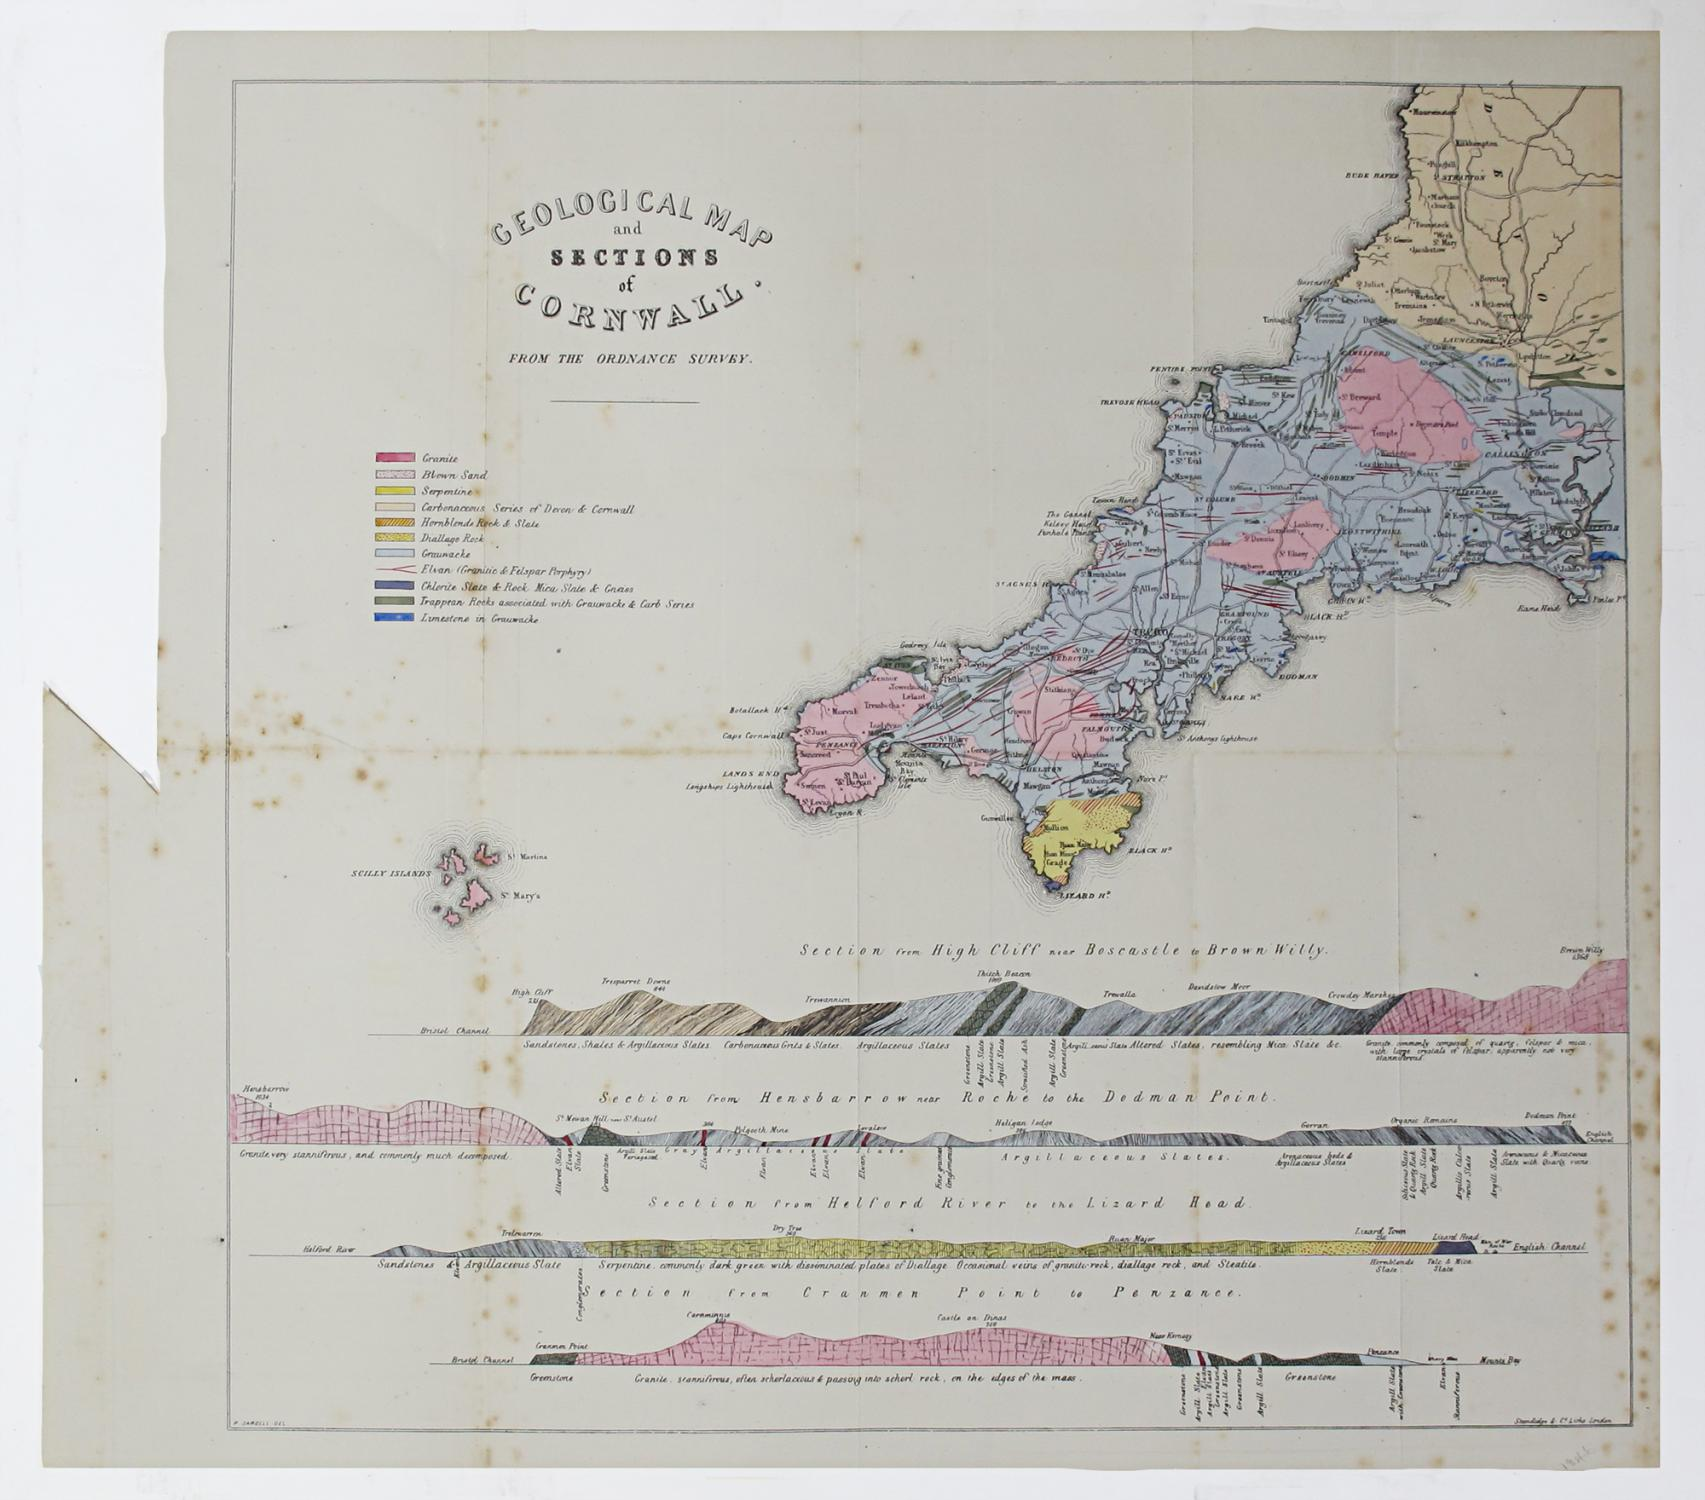 Sections Of London Map.Geological Map And Sections Of Cornwall From The Ordnance Survey